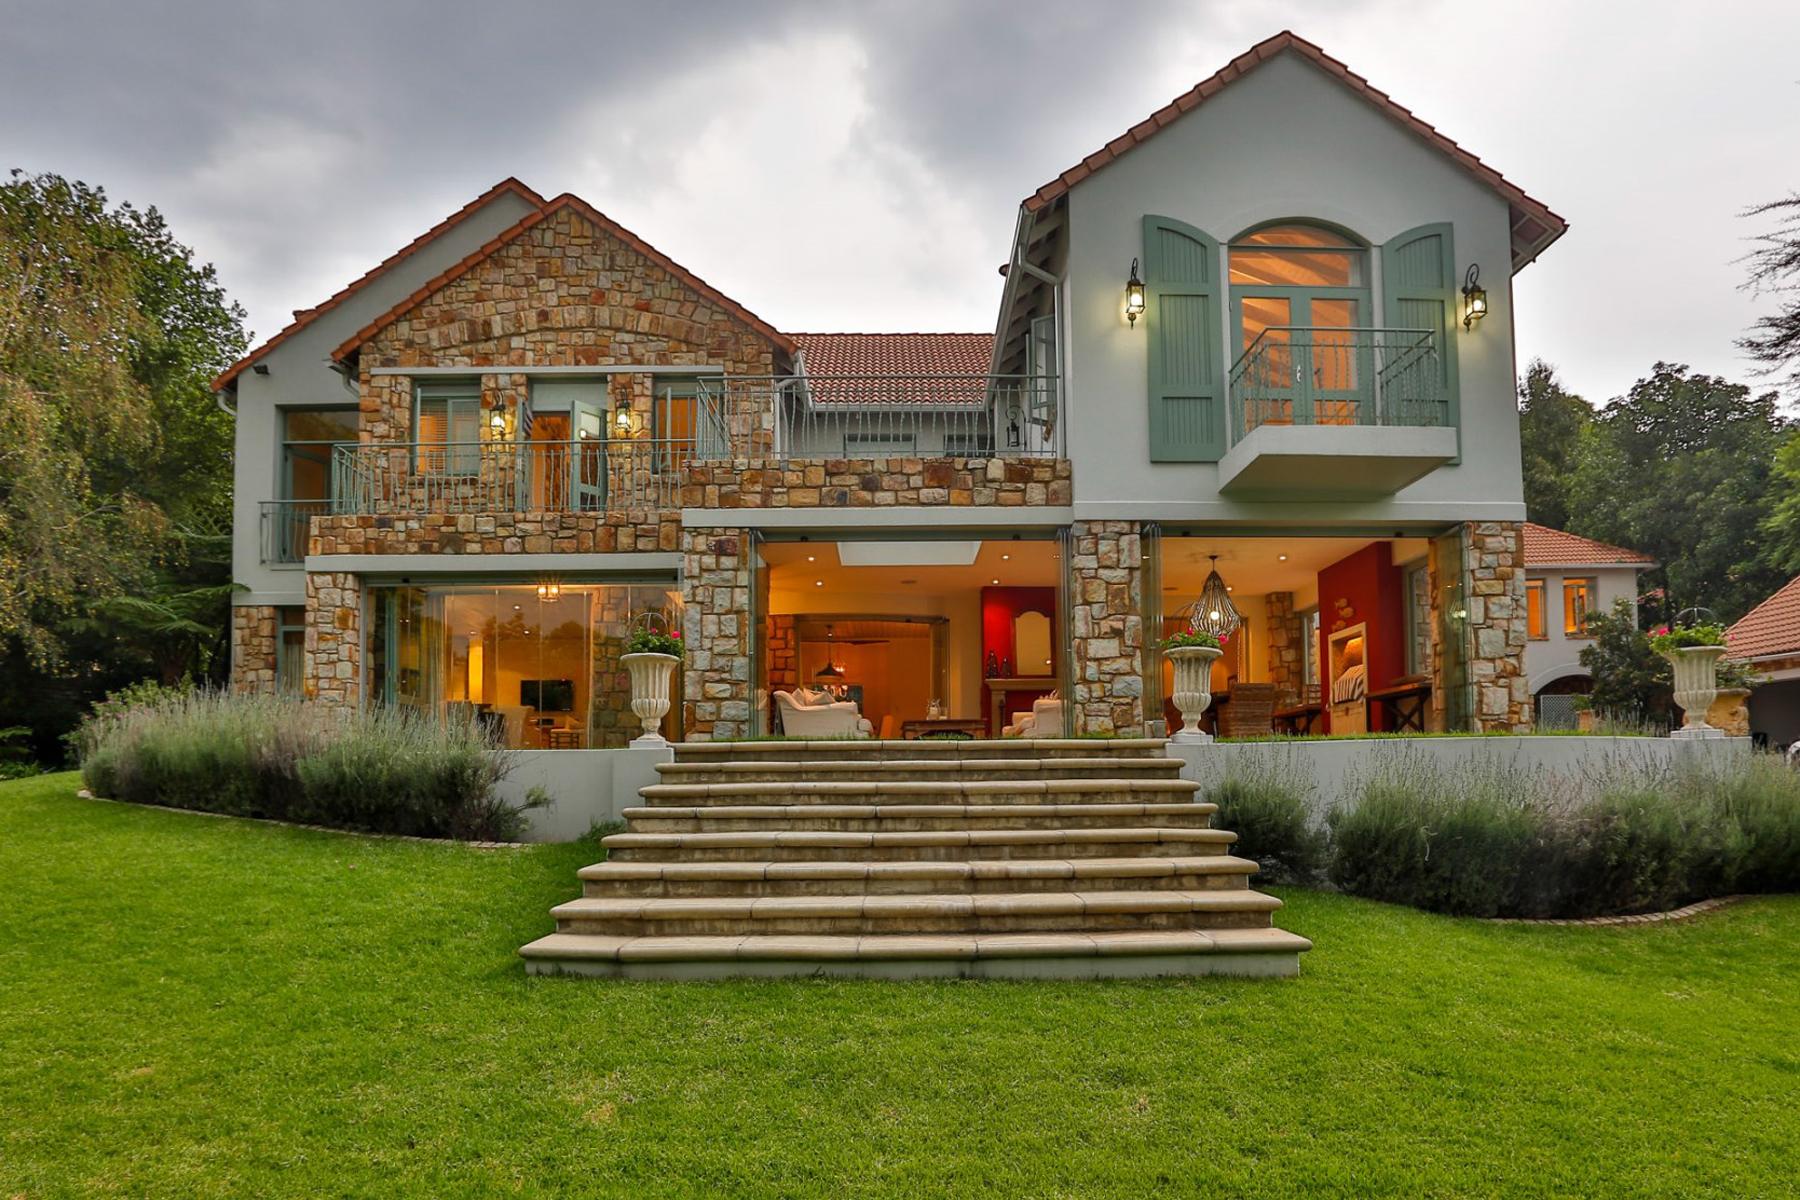 Single Family Home for Sale at West Cliff Johannesburg, Gauteng, 2193 South Africa